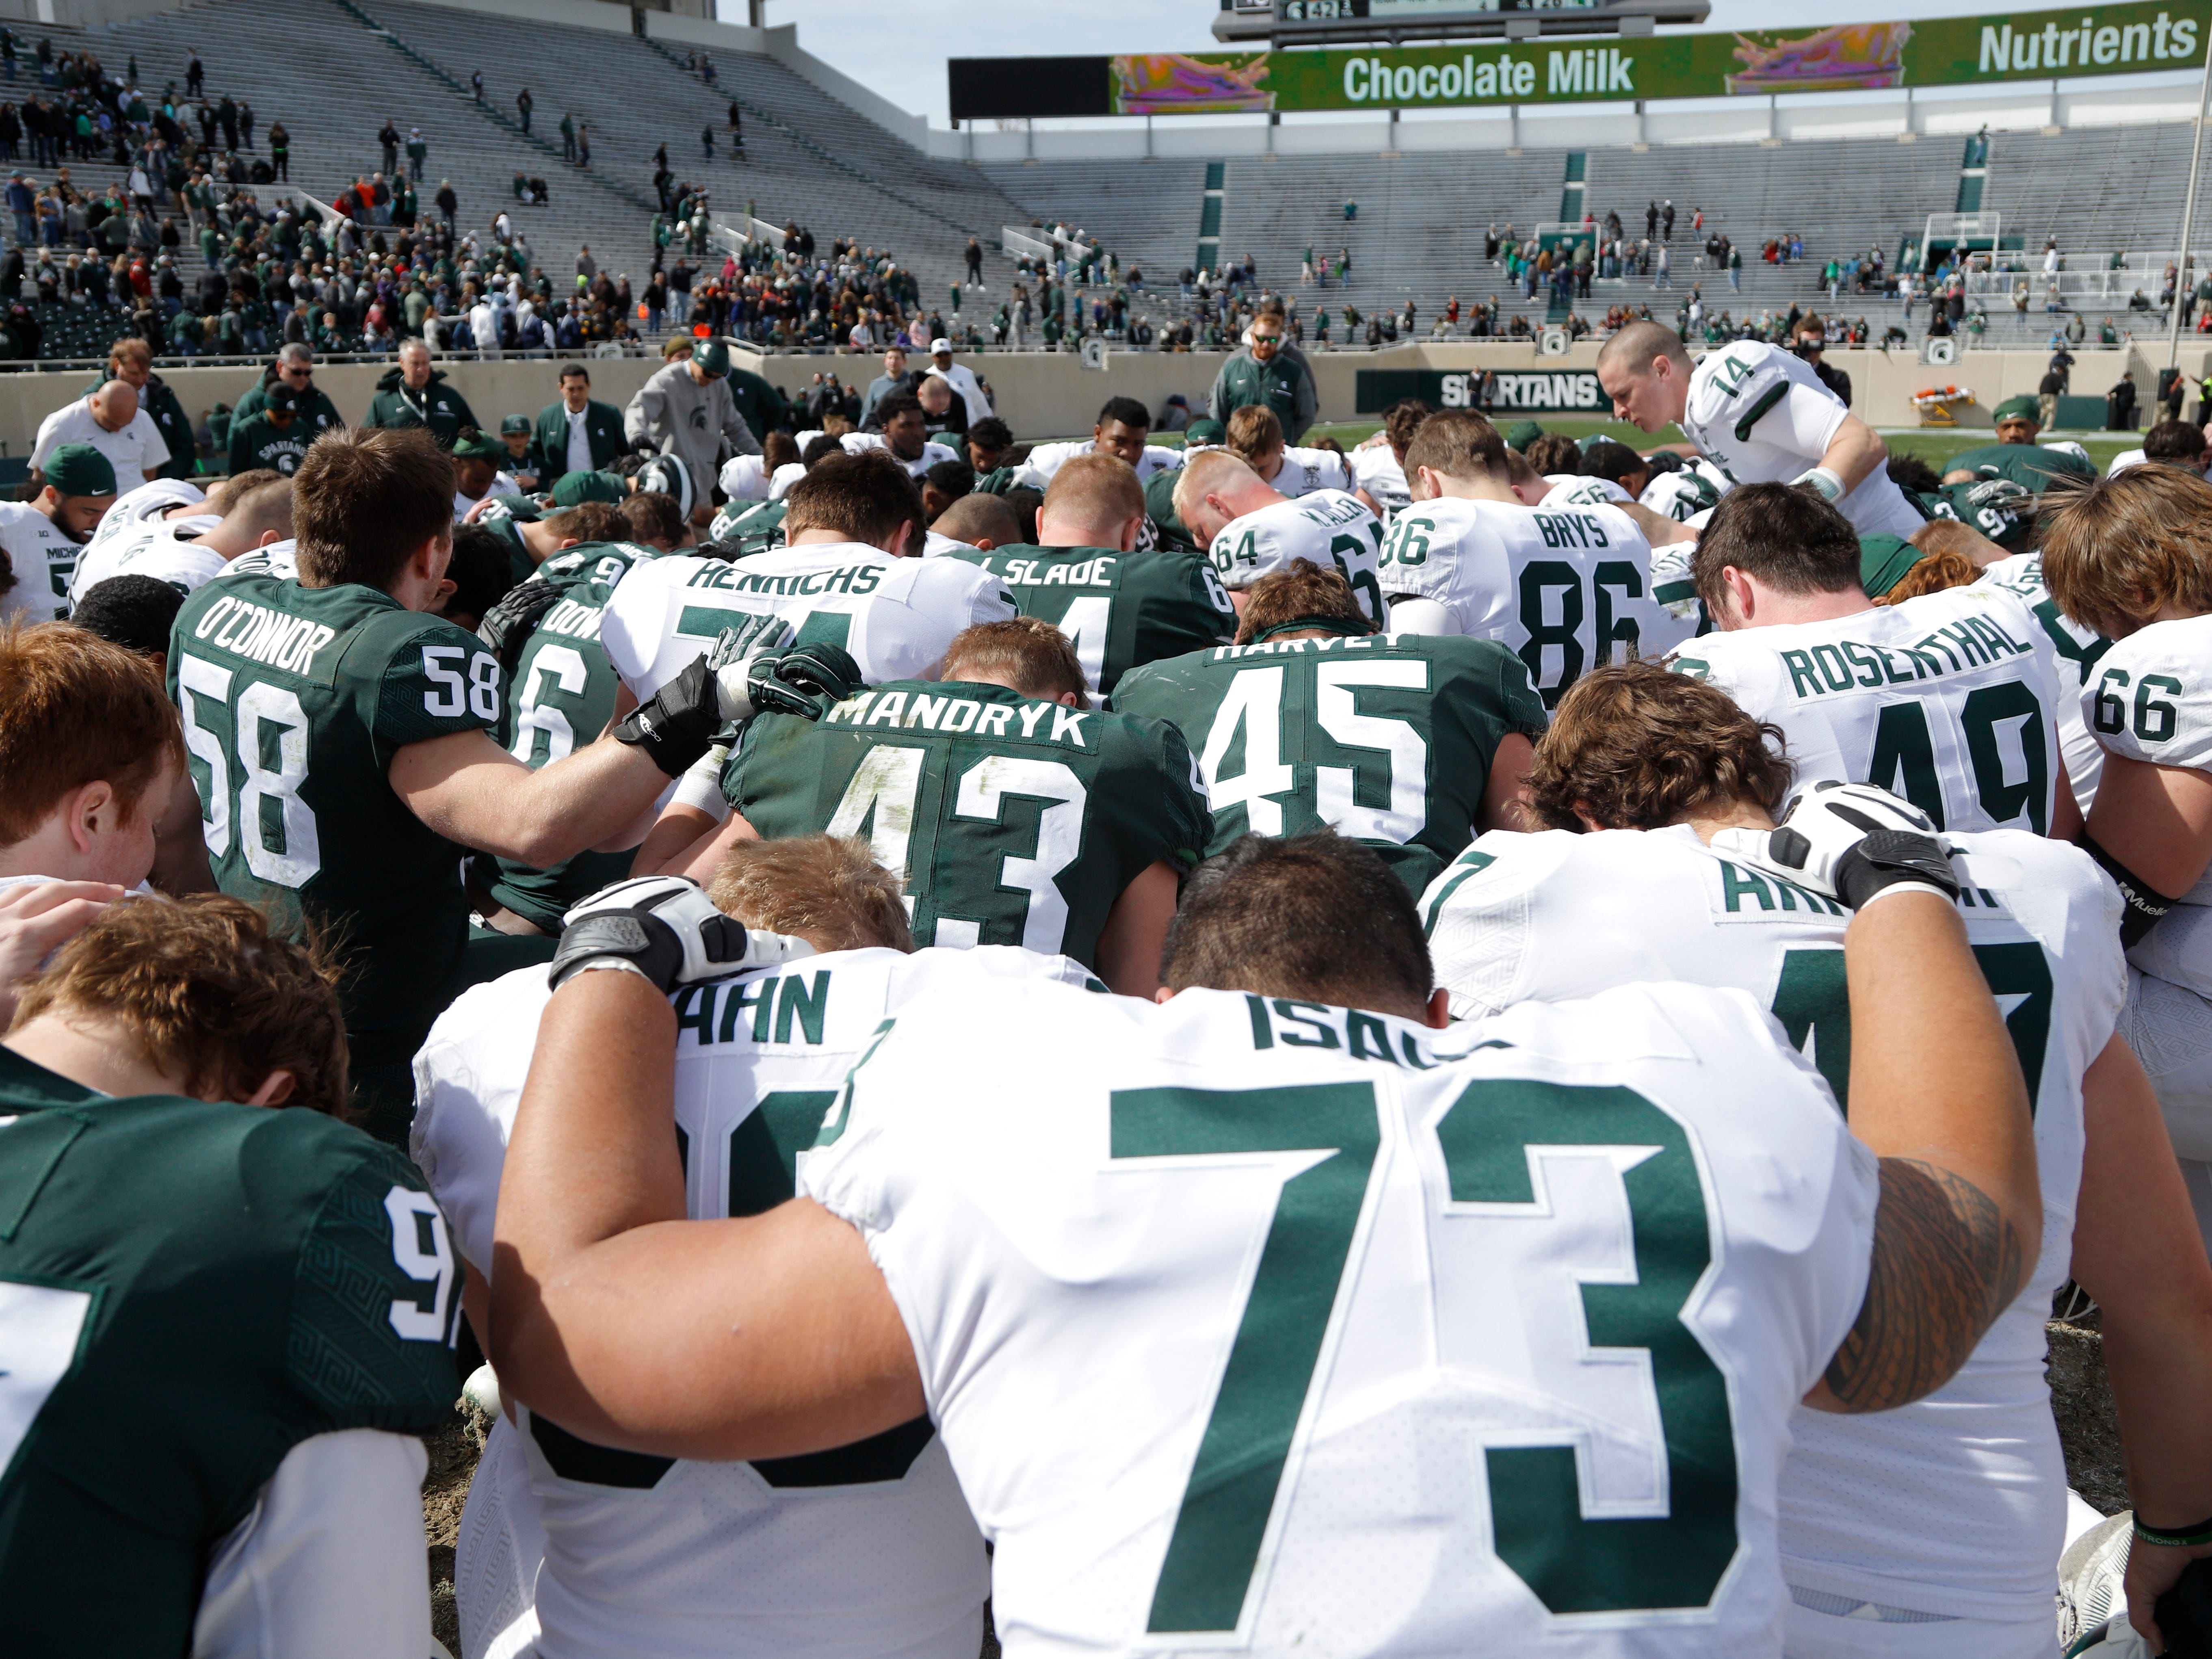 Michigan State players gather following an NCAA college football spring scrimmage game, Saturday, April 13, 2019, in East Lansing, Mich. (AP Photo/Al Goldis)